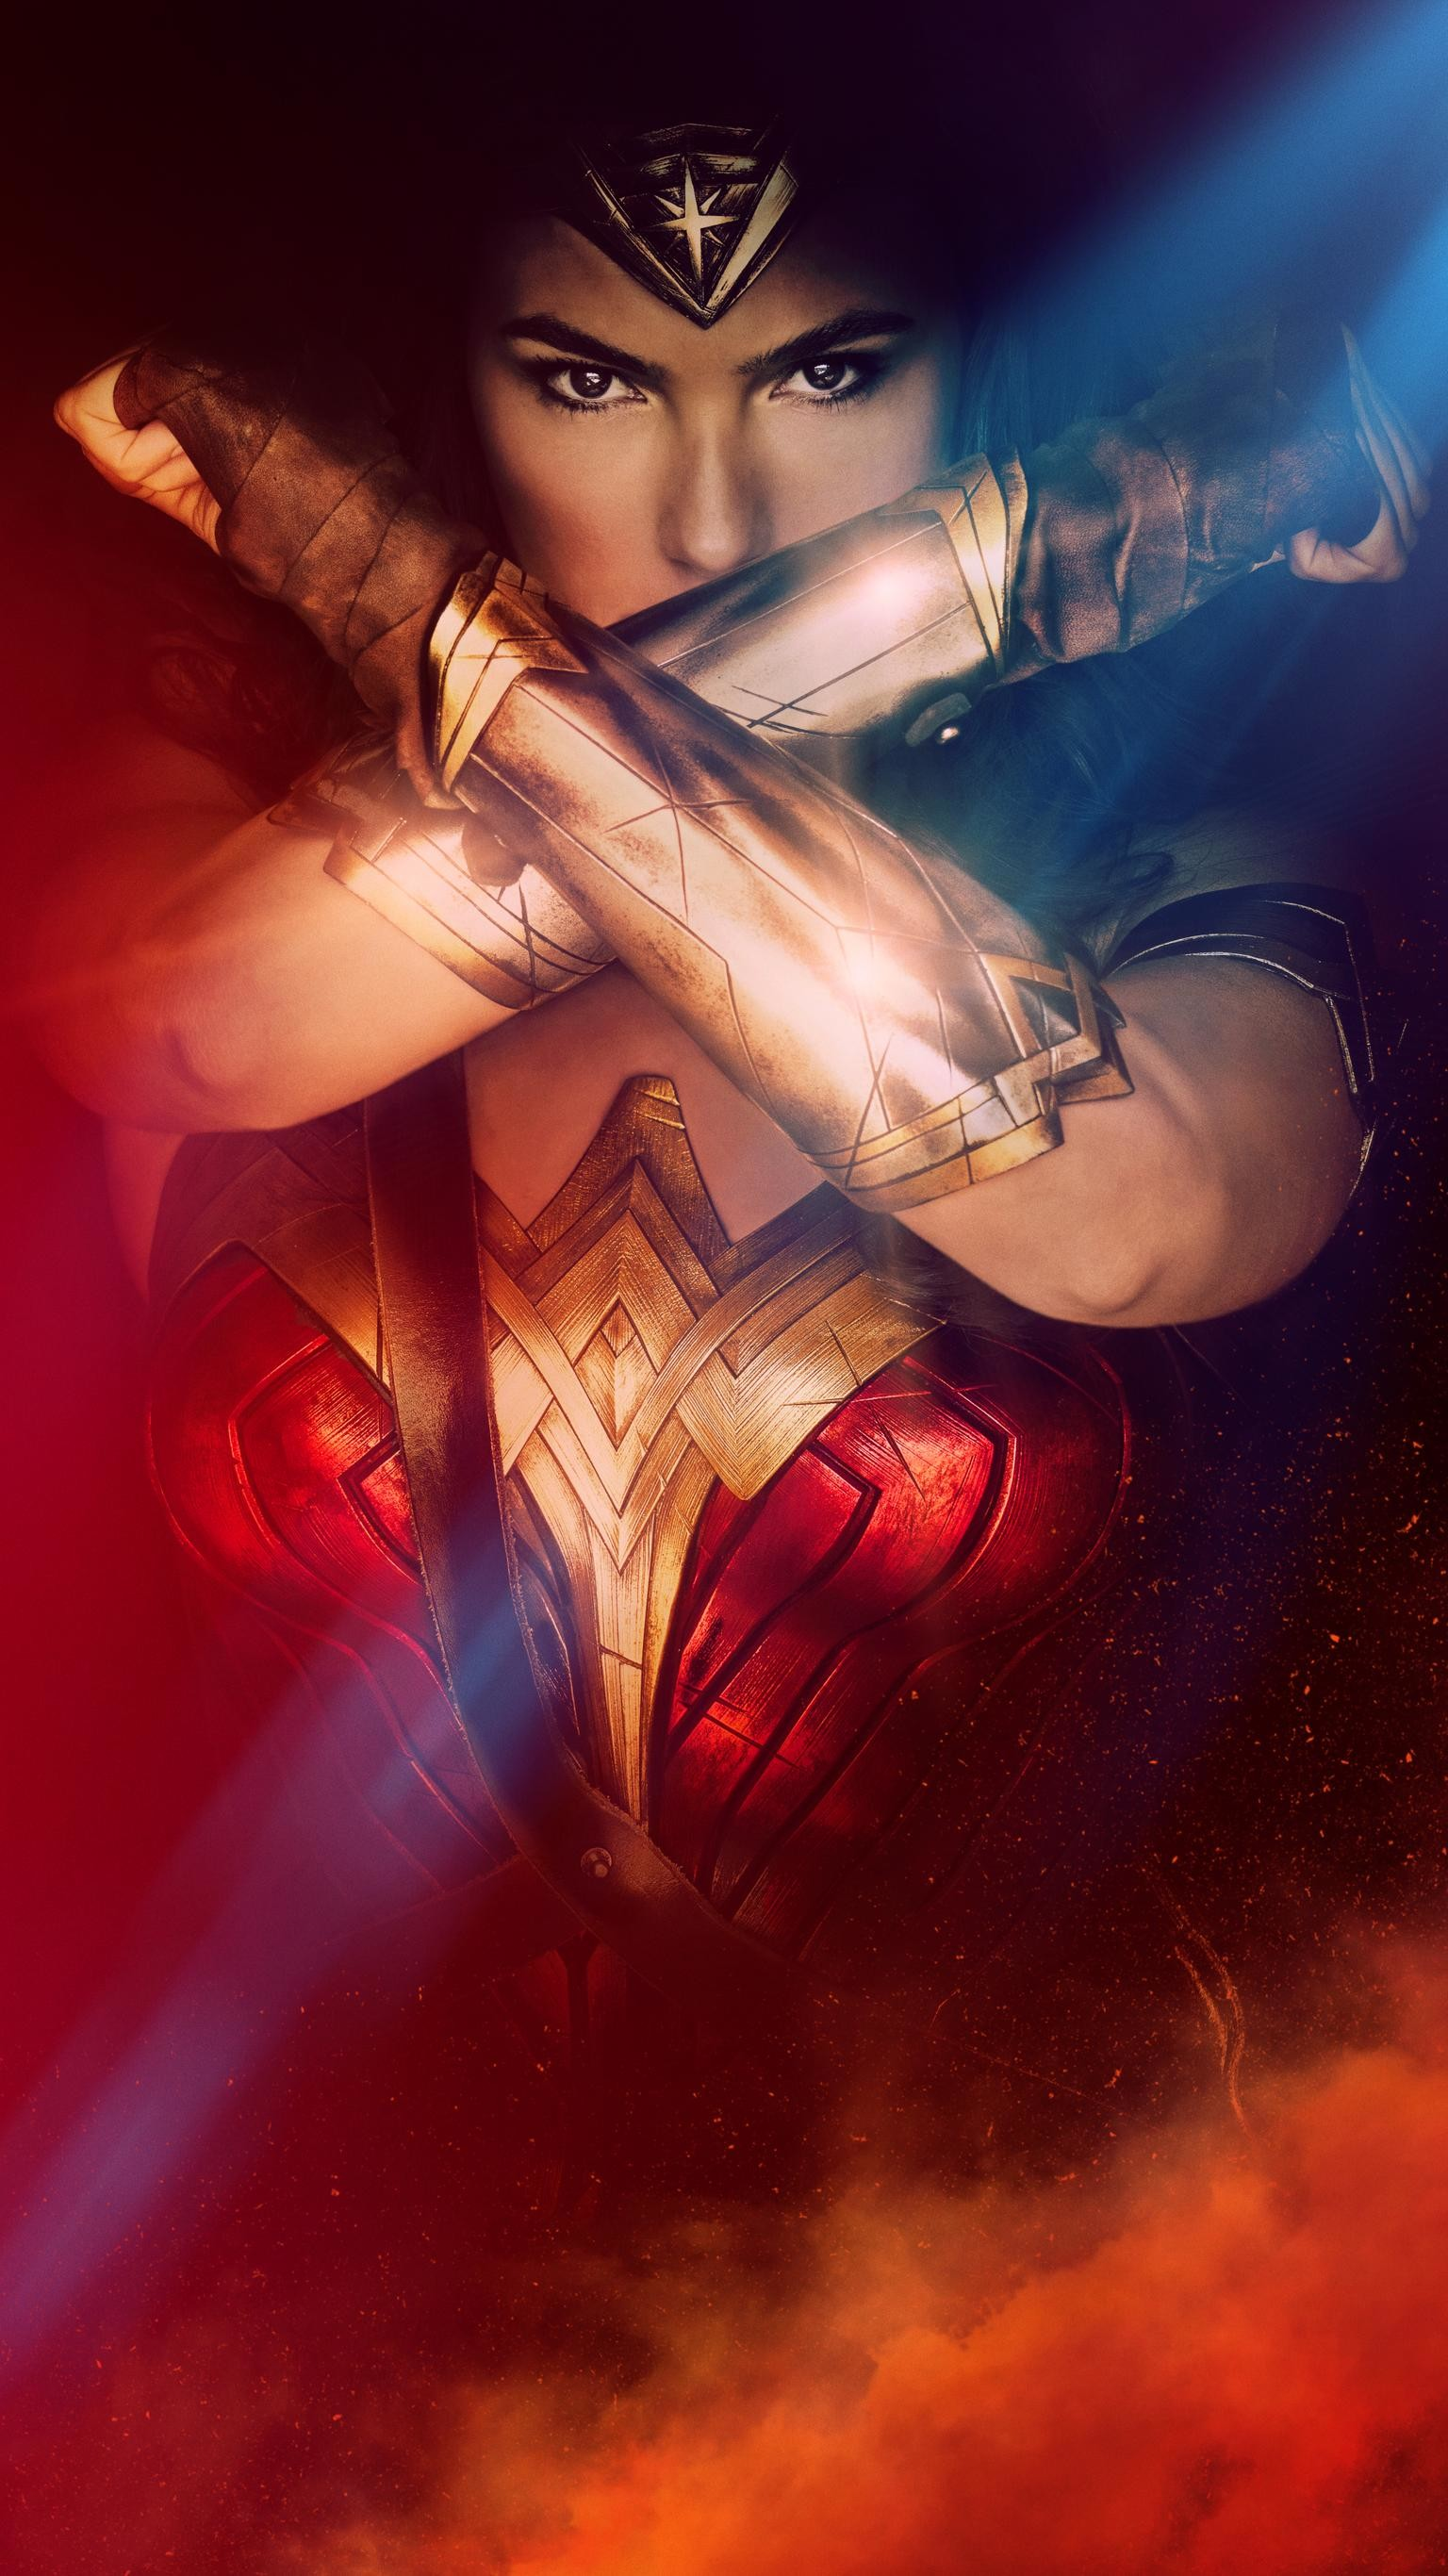 """Res: 1536x2732, Wallpaper for """"Wonder Woman"""" ..."""